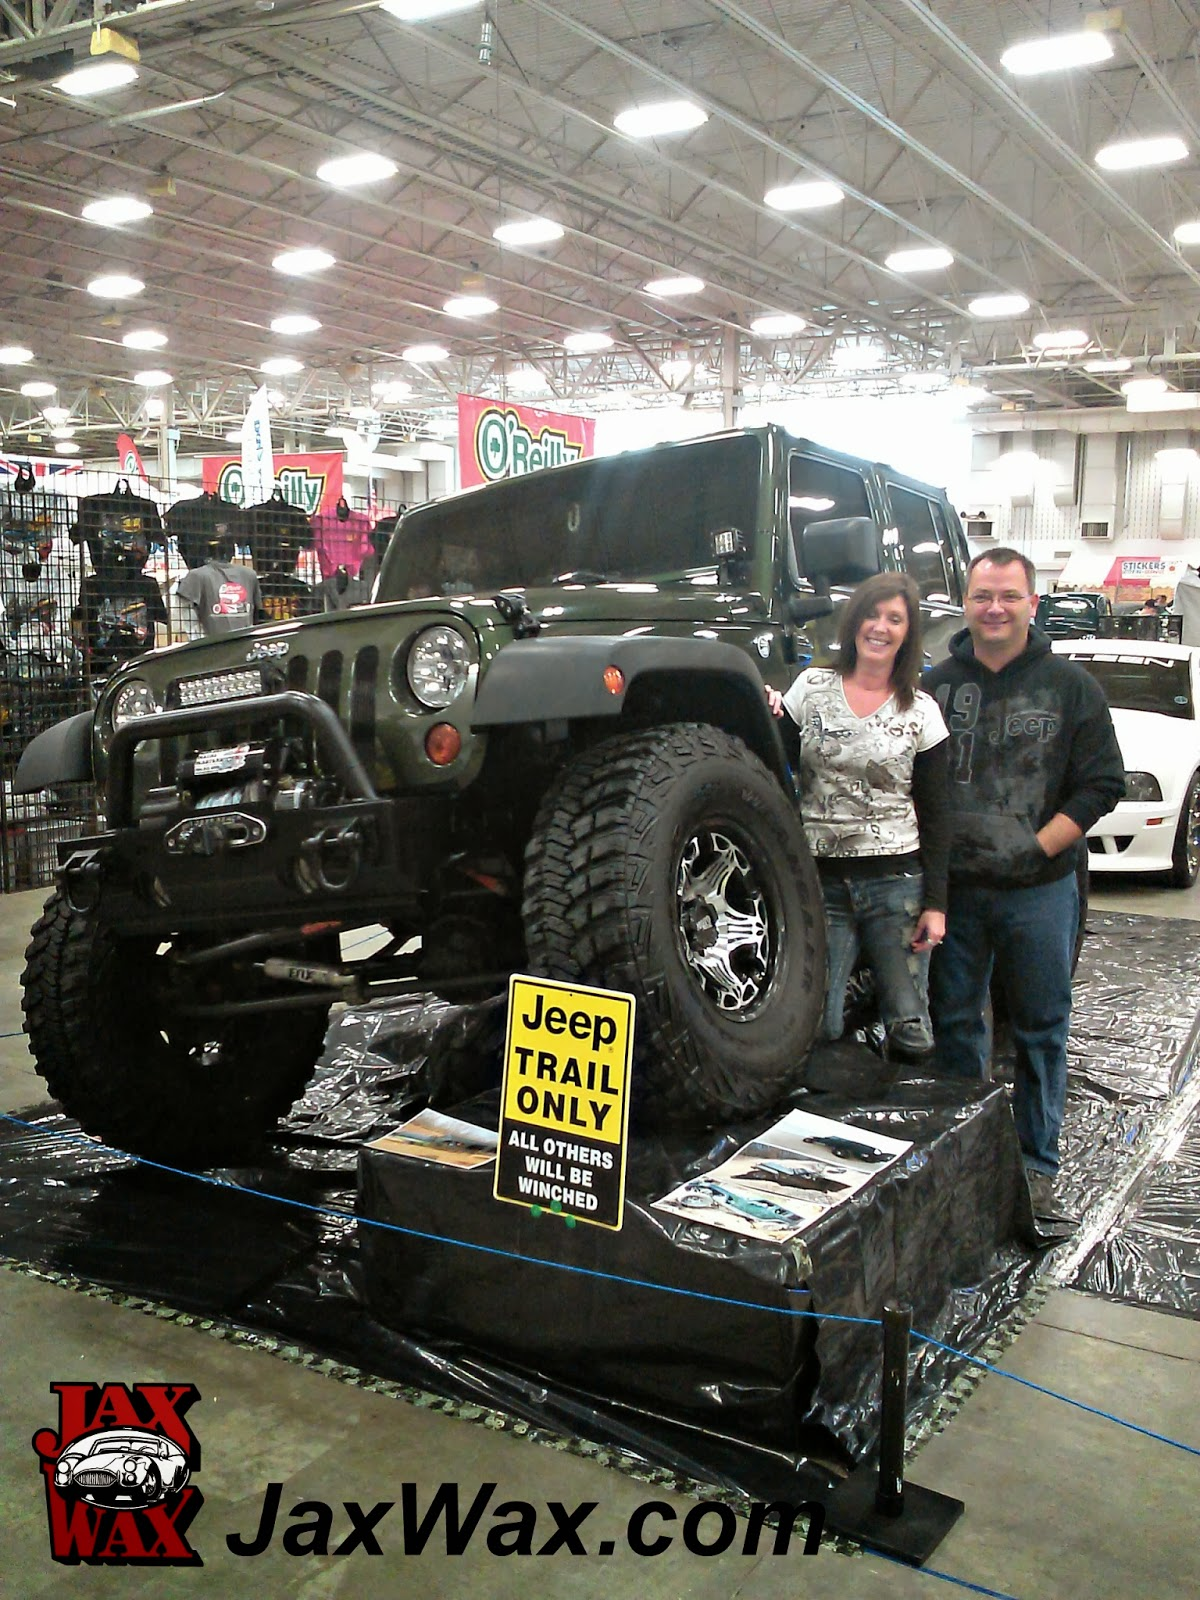 2008 Jeep Wrangler Unlimited Indianapolis World of Wheels Jax Wax Customer